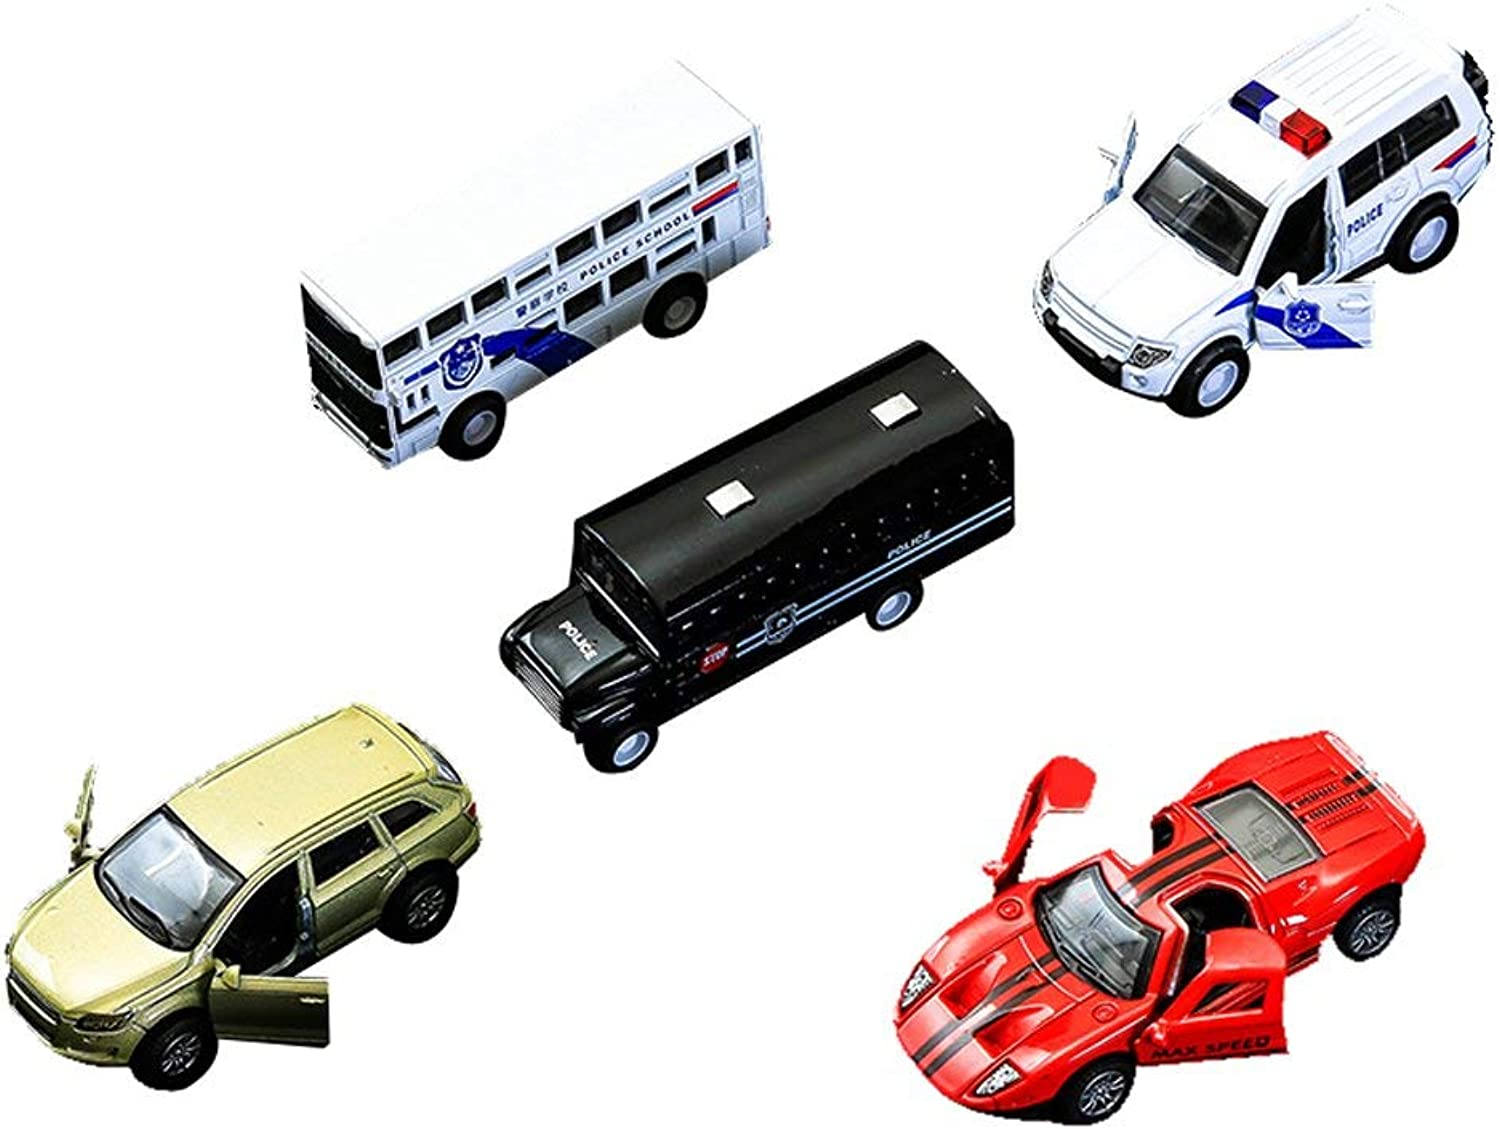 5 Pieces 1 64 Mini Pull Back Model Plastic Car Truck Vehicle ToysBirthday Christmas Gift for Kids Cars Toys Alloy Model Cars 1